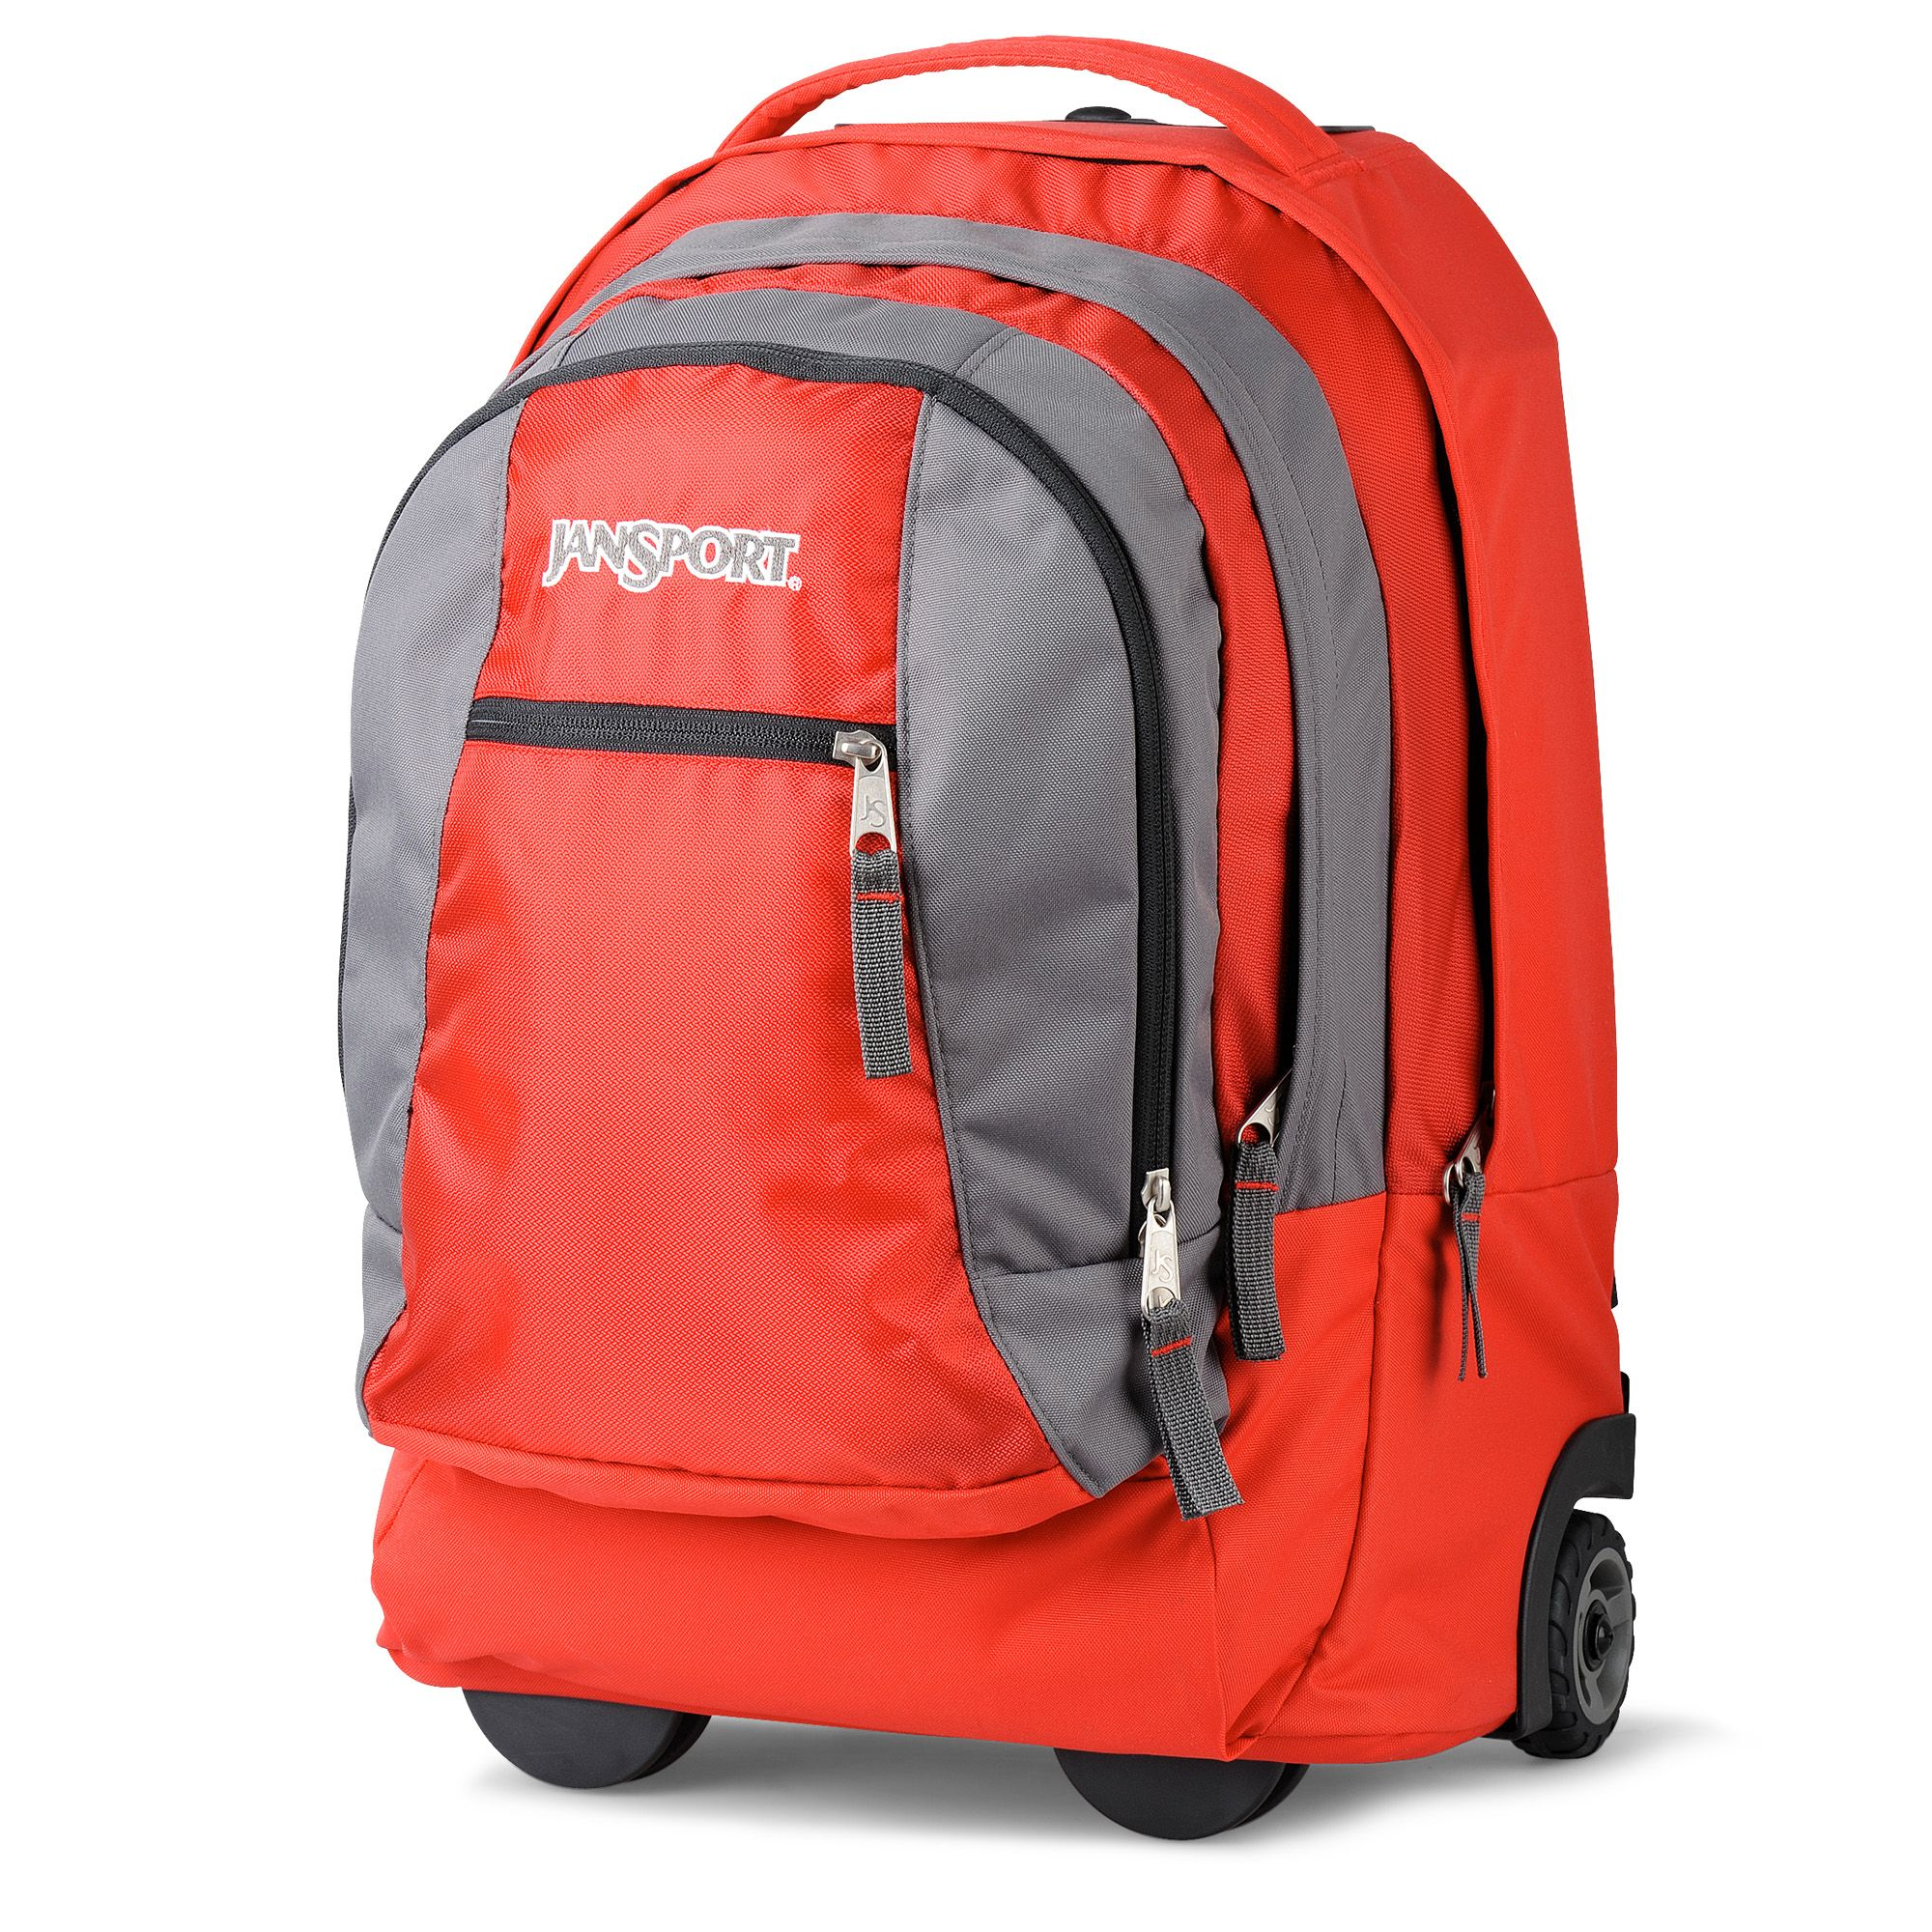 Jansport Backpacks With Wheels sCtCZeQz